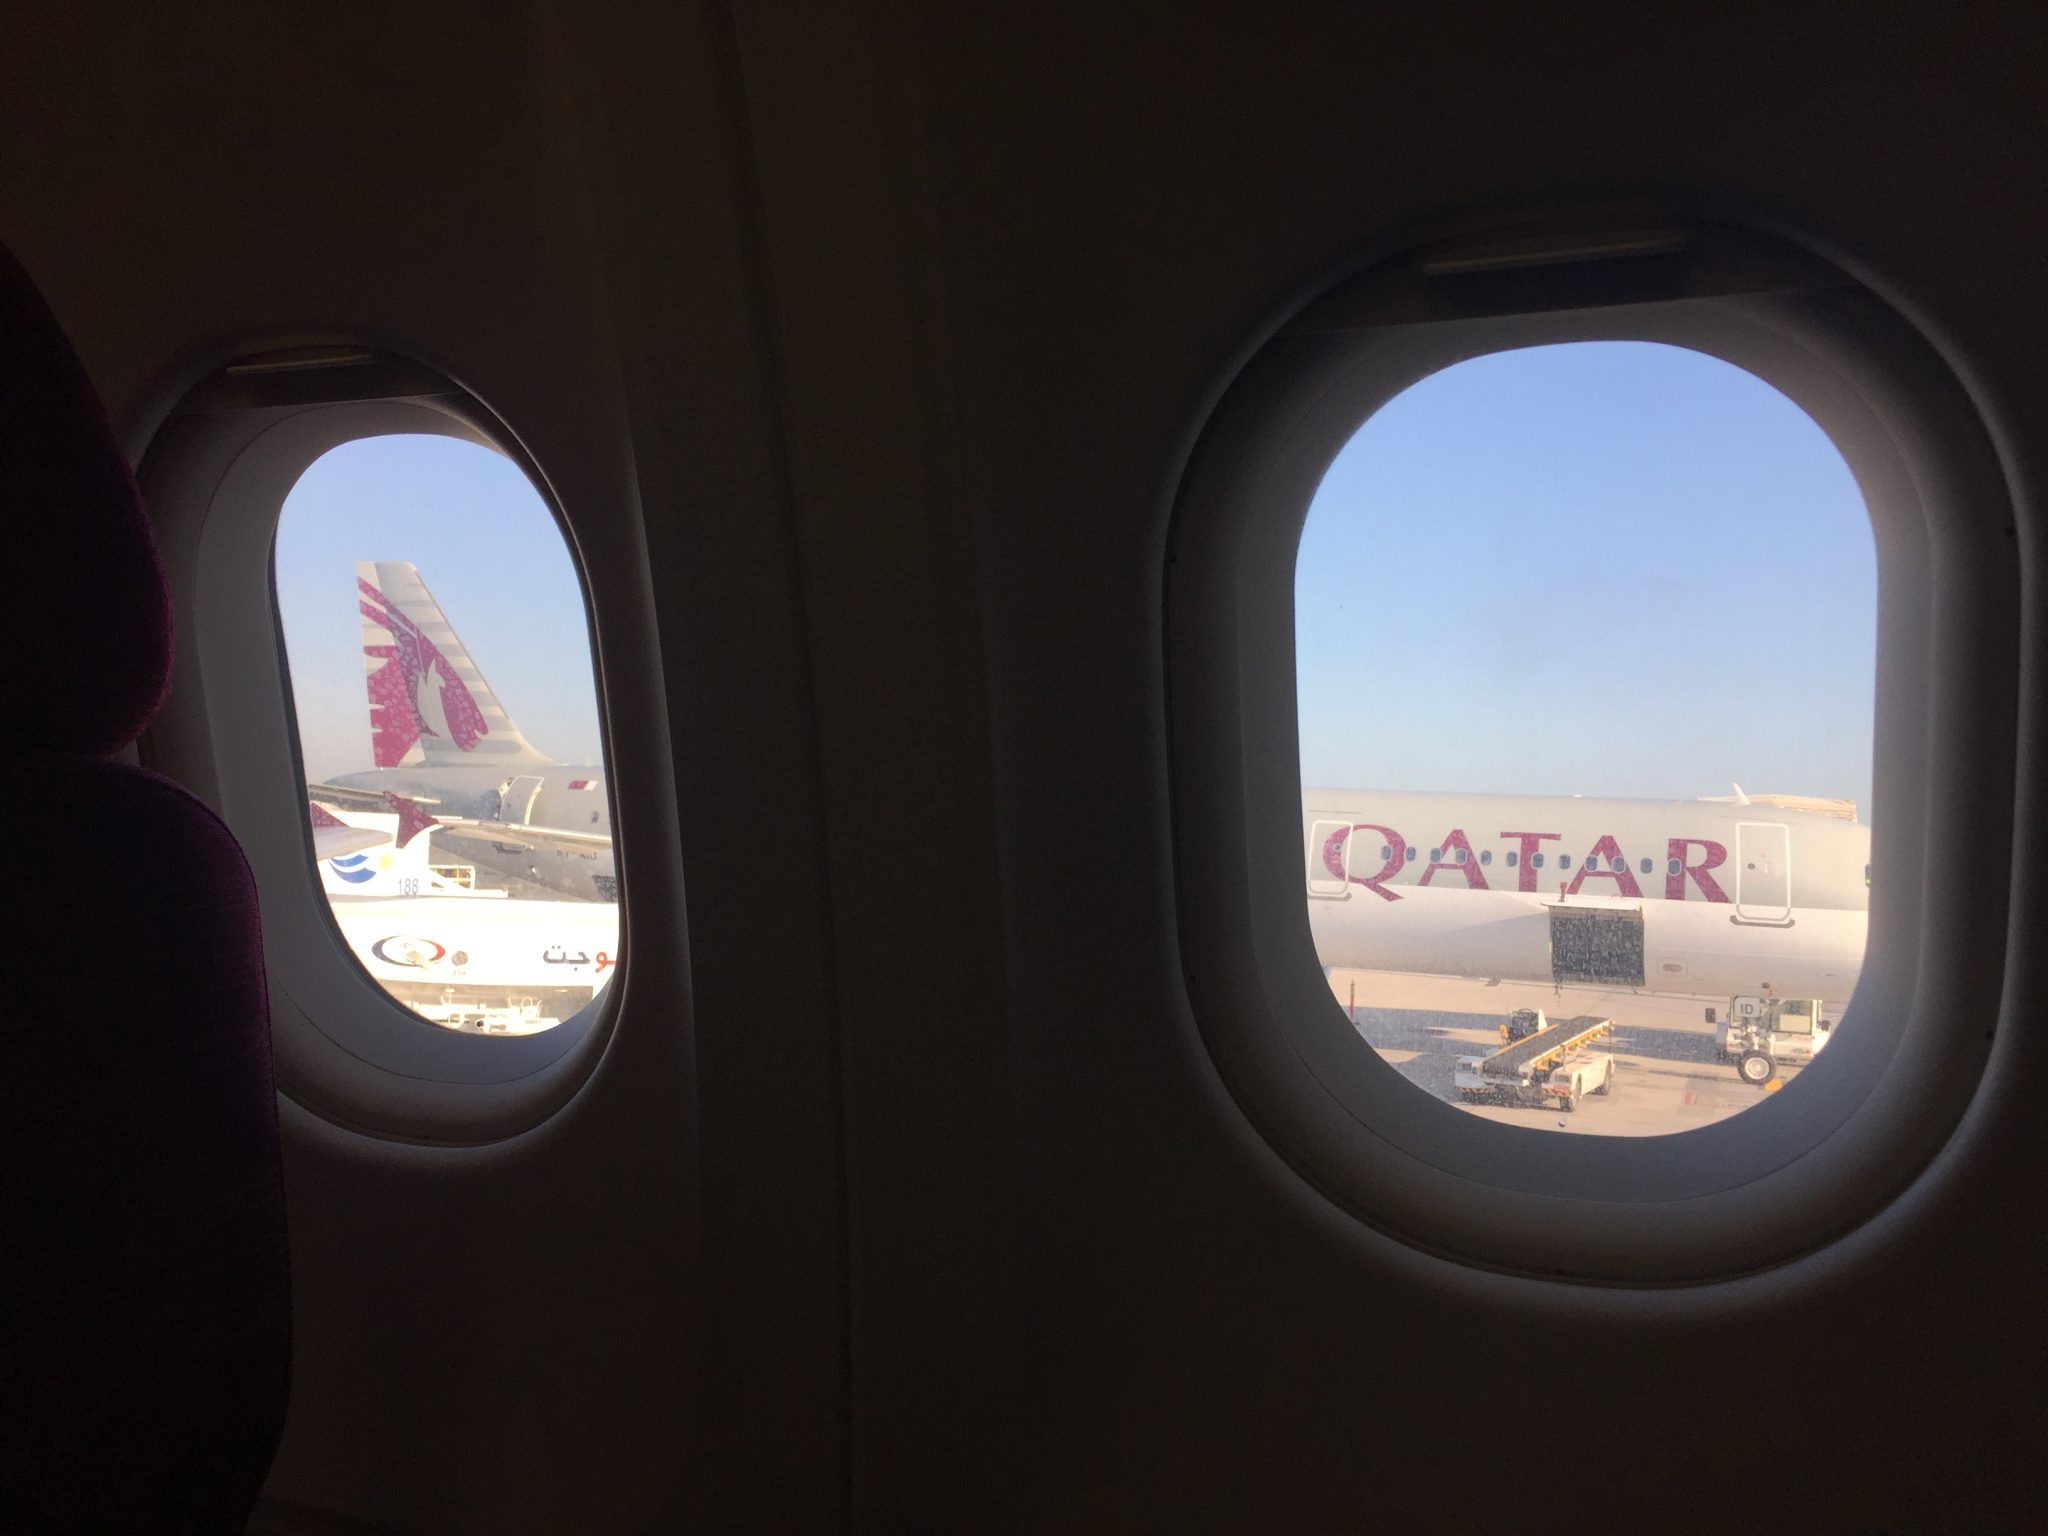 A picture of a Qatar airlines plane parked at Doha airport